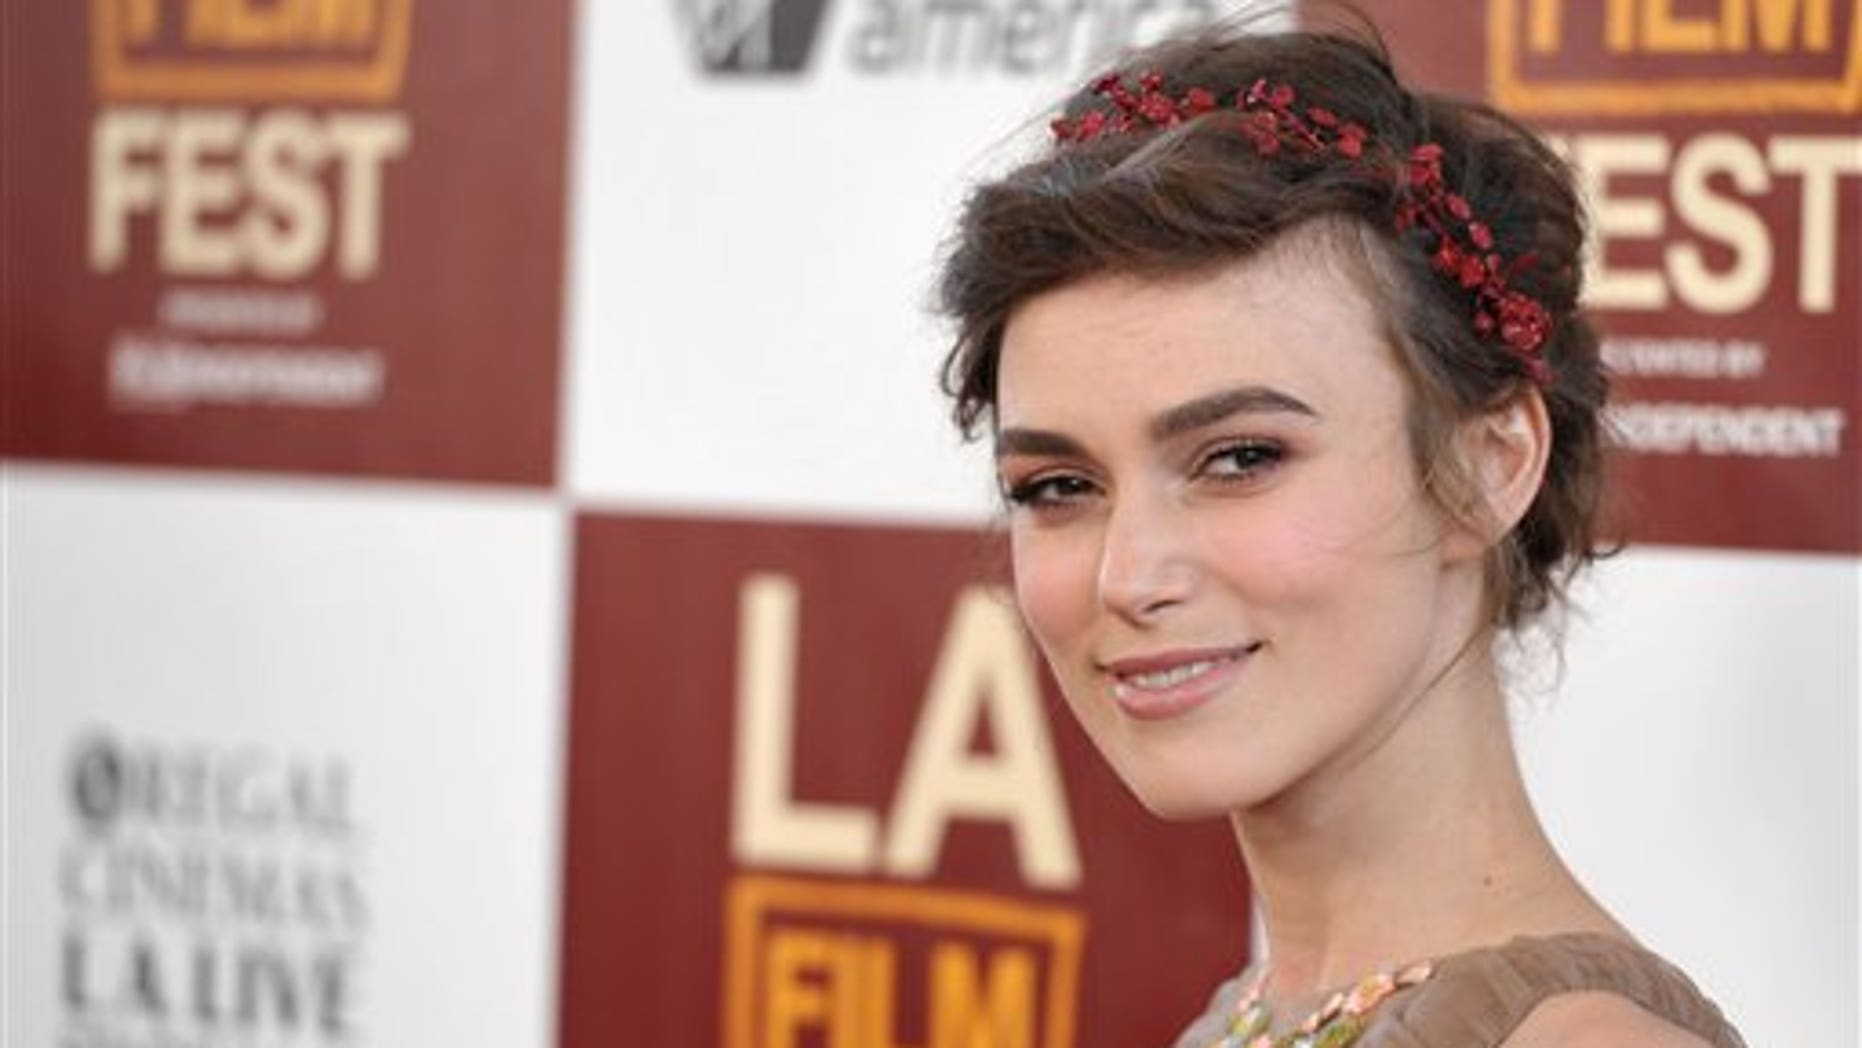 """Keira Knightley arrives at the premiere of """"Seeking a Friend for the End of the World"""" at Regal Cinemas LA Live on Monday June 18, 2012 in Los Angeles. (Photo by John Shearer/Invision/AP)"""